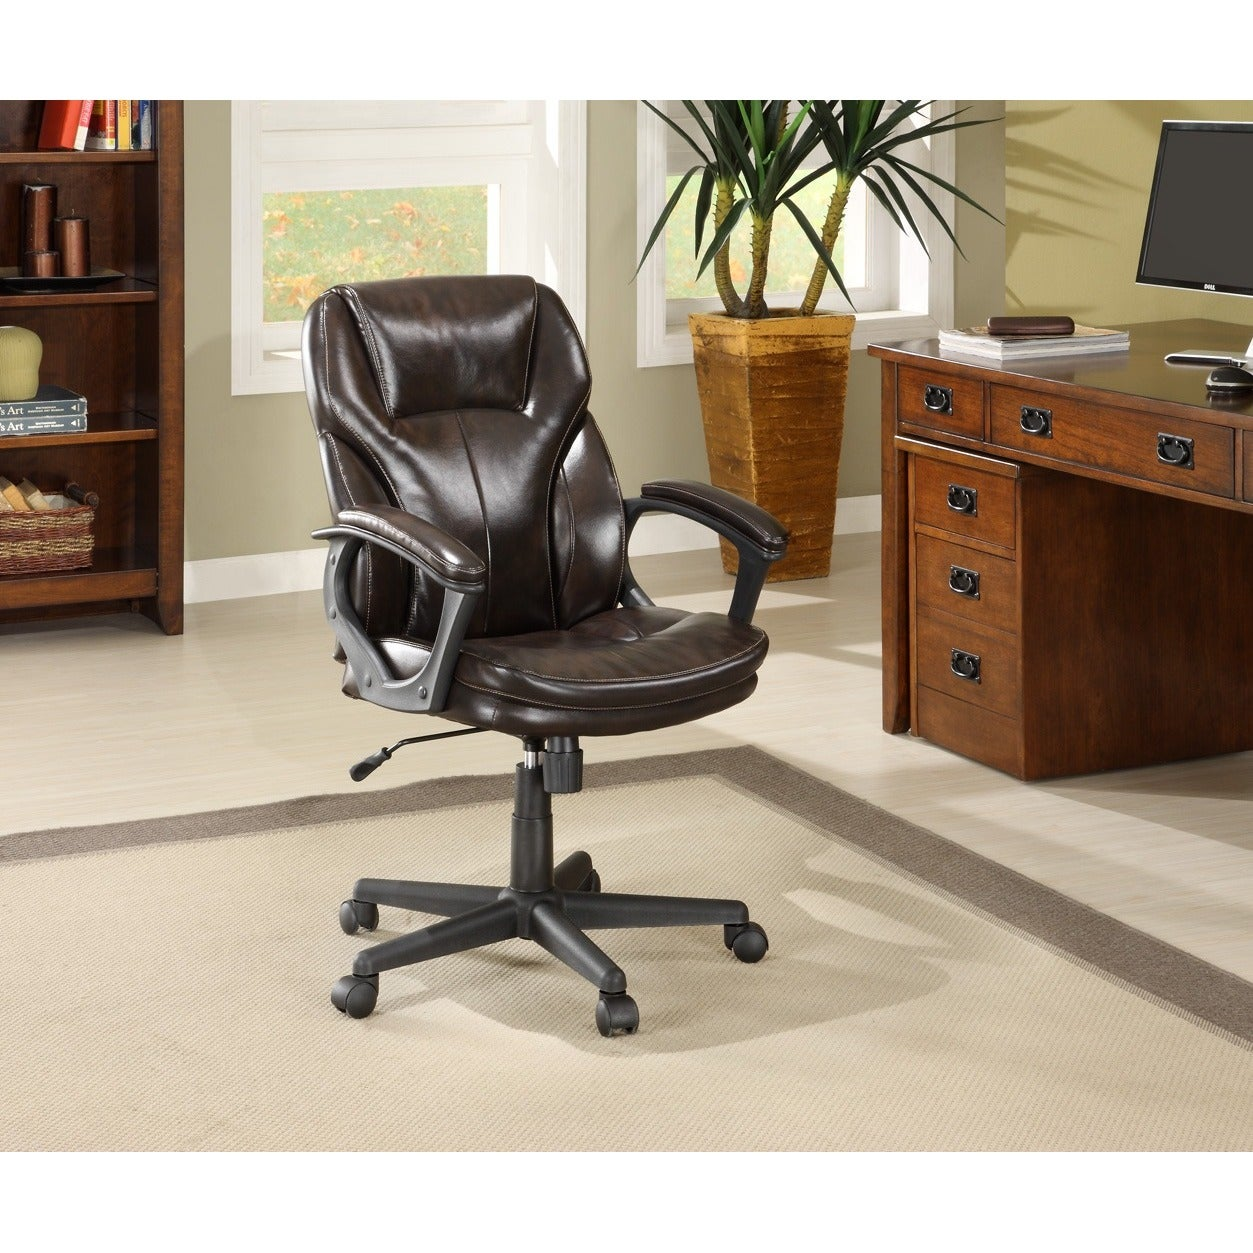 Serta Roasted Chestnut Brown Puresoft Faux Leather Managers Office Chair Free Shipping Today 9066790